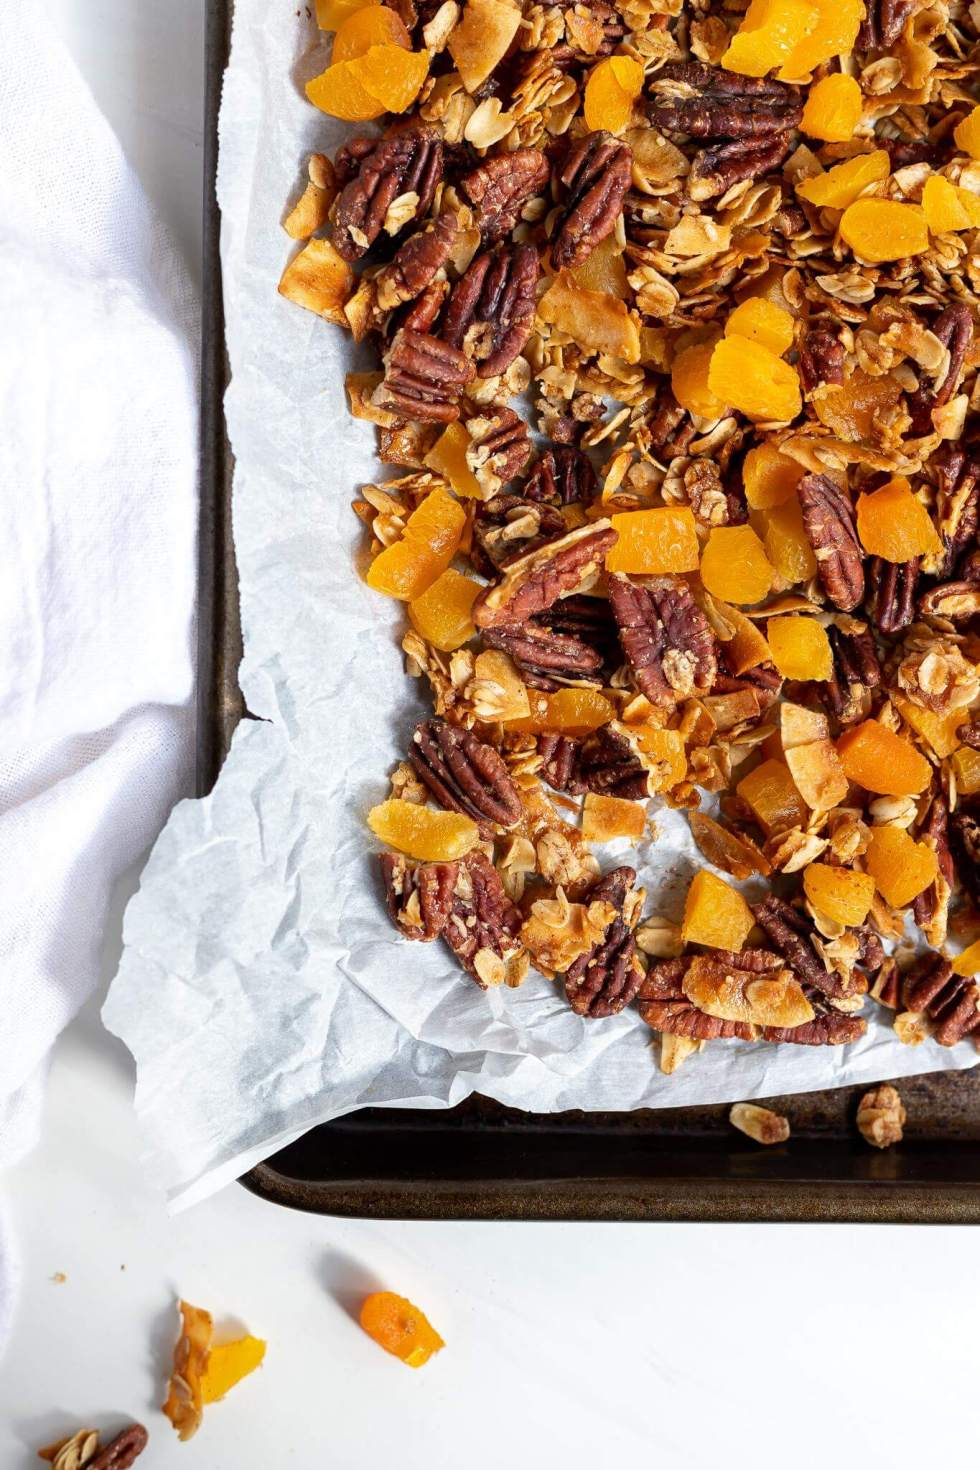 homemade granola with pecans and apricots on baking sheet